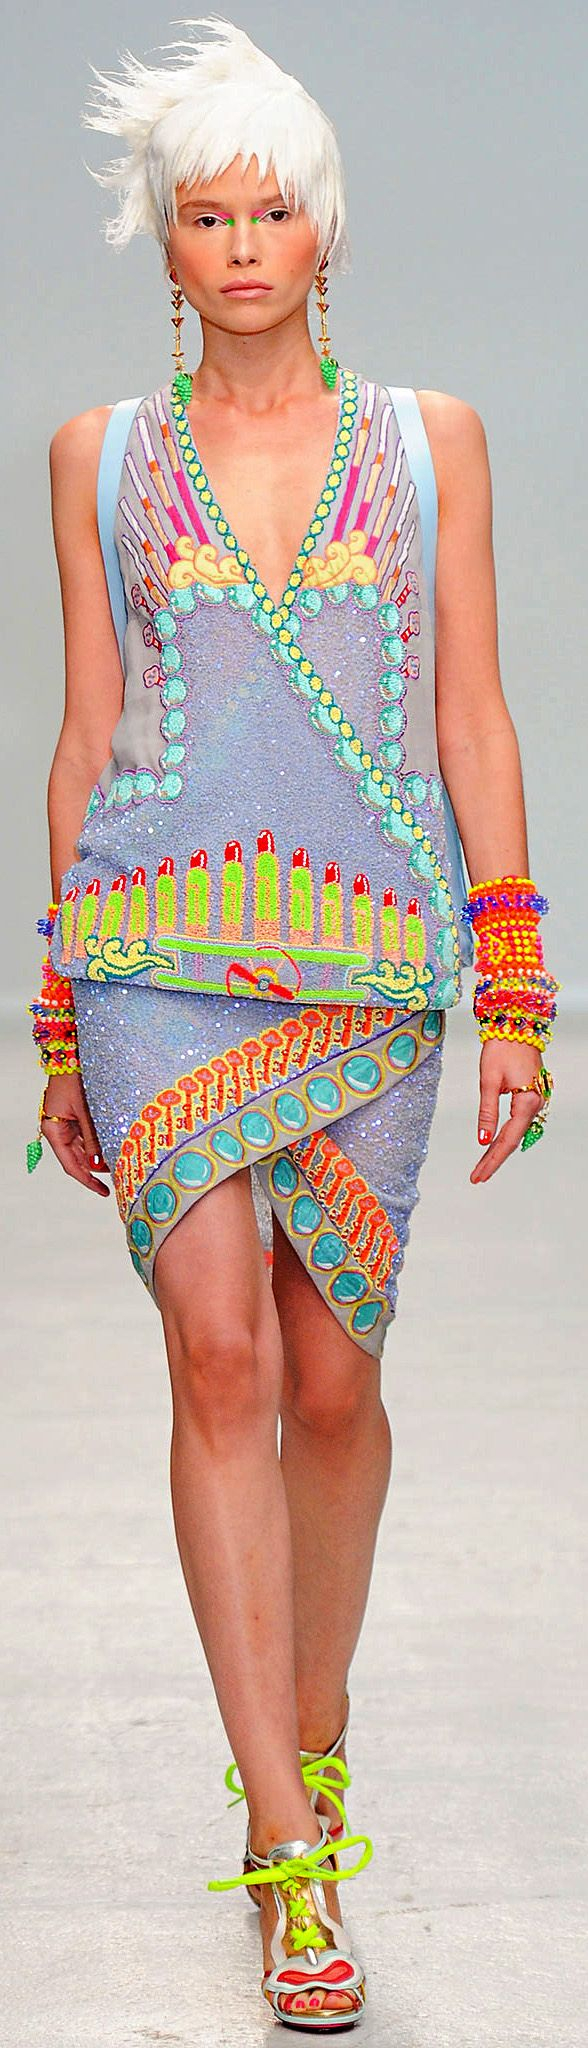 Spring 2014 Ready-to-Wear Manish Arora                                                                                                                                                                                 More